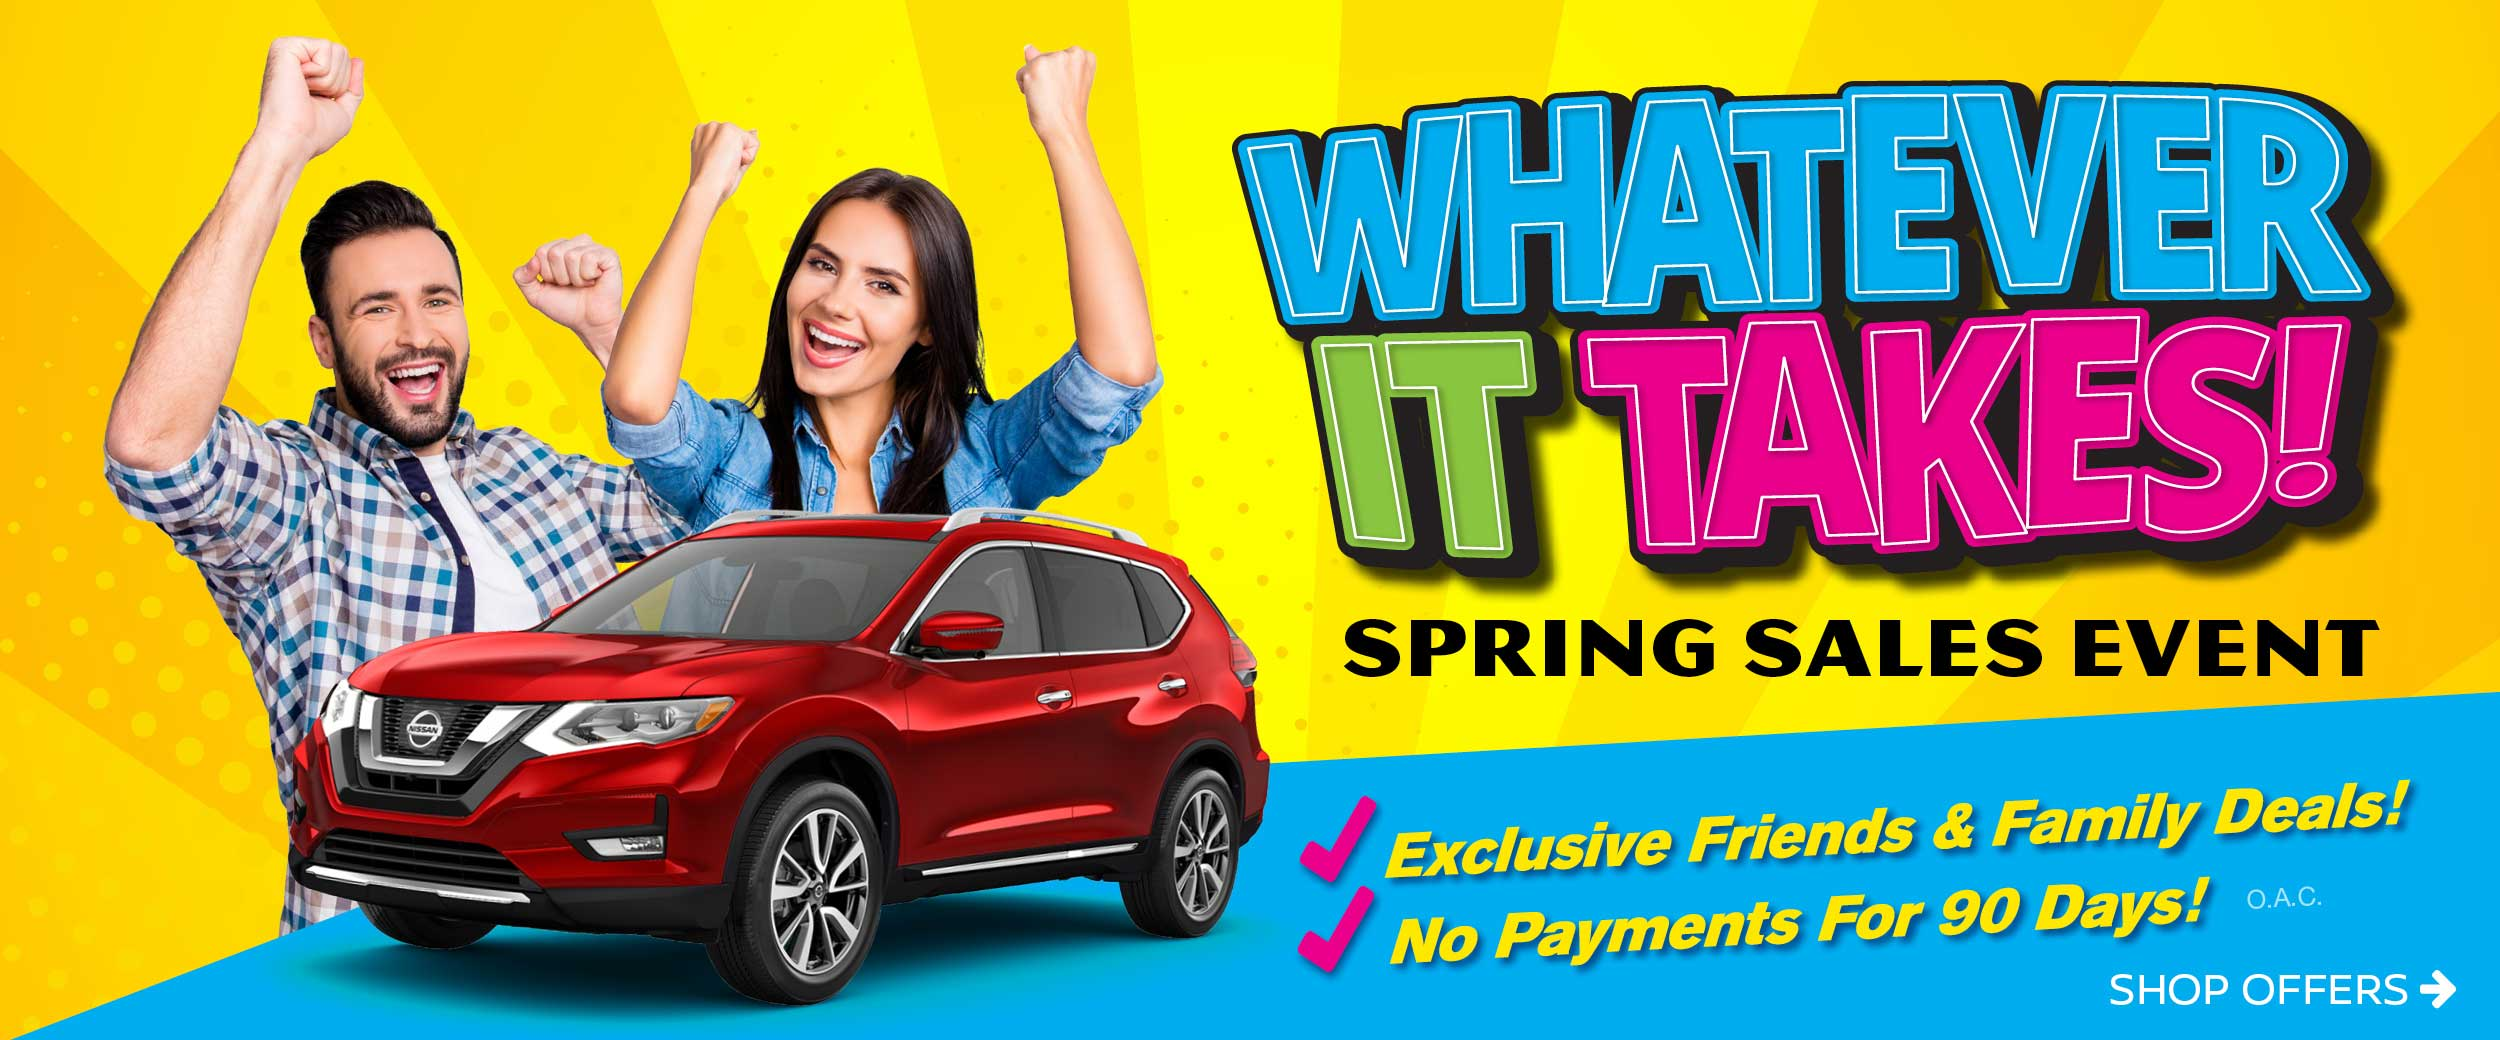 18APR-Nissan-Whatever It Takes